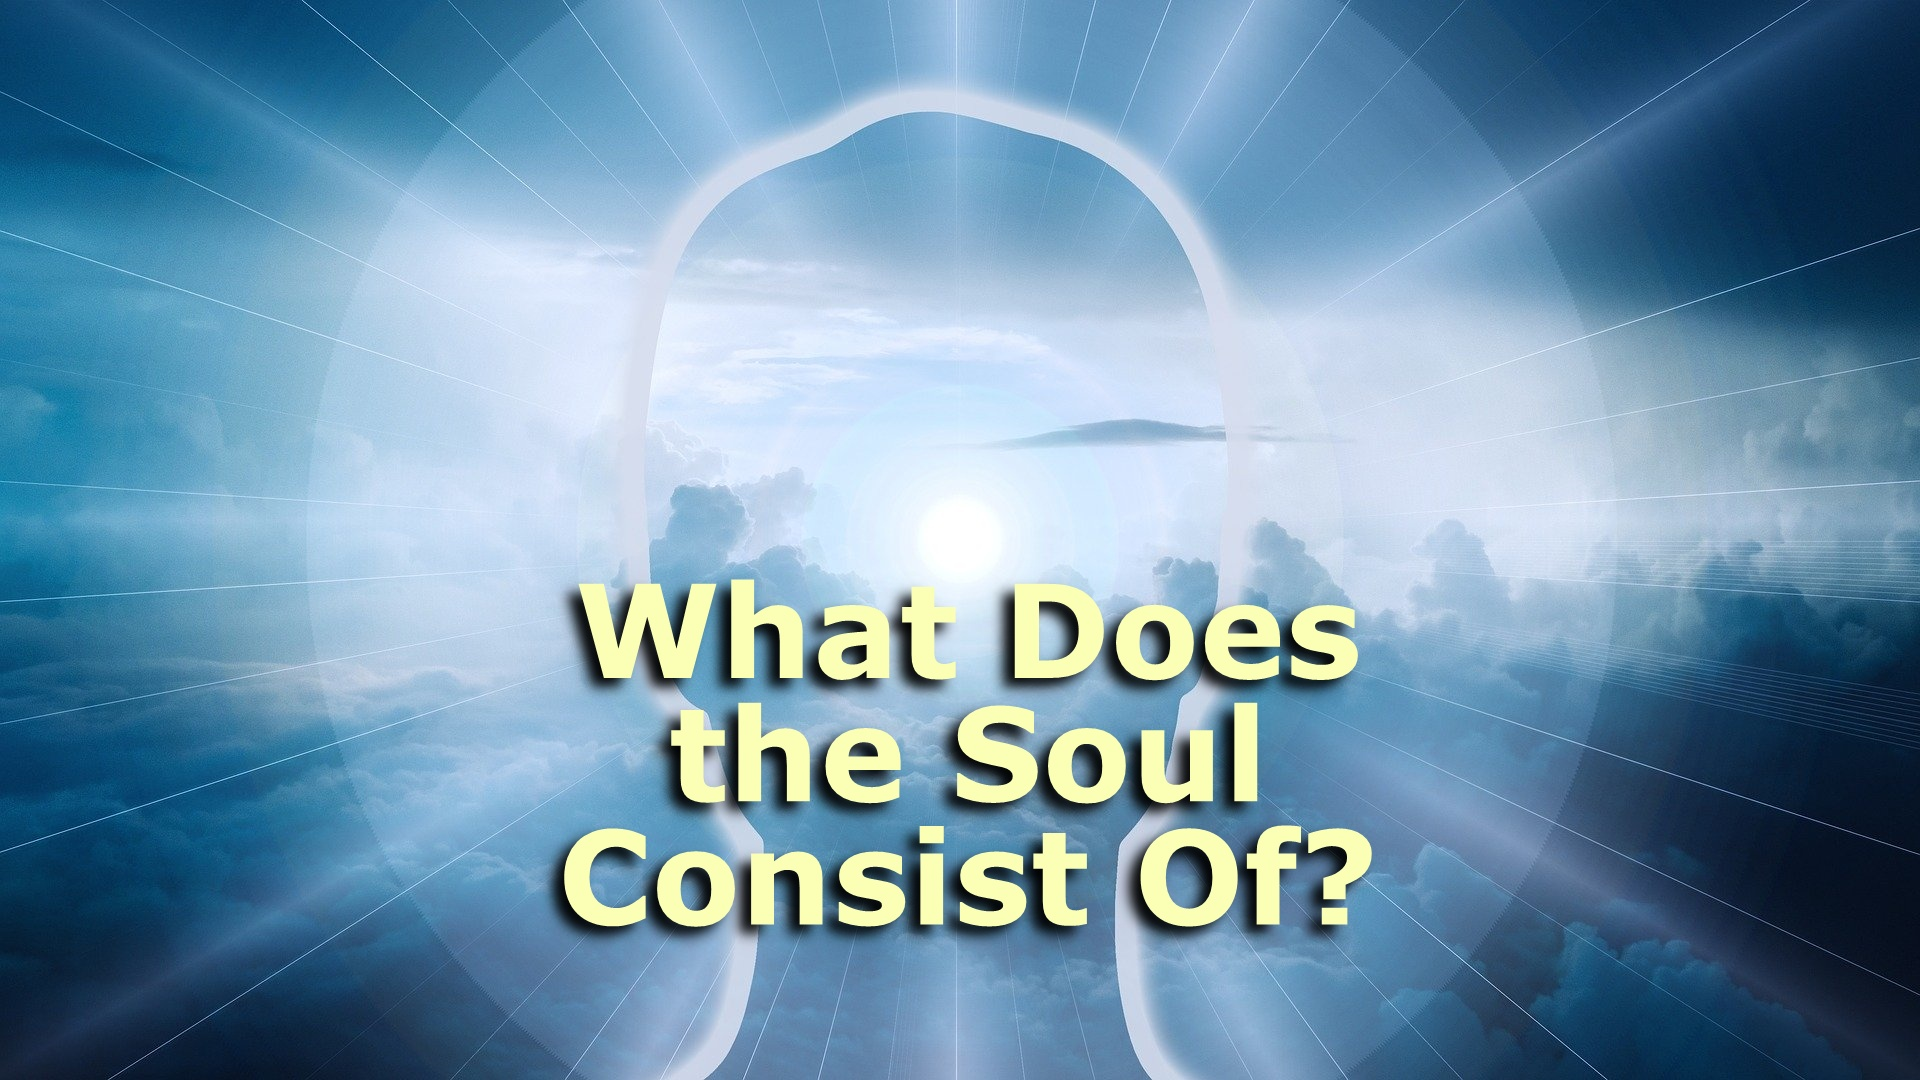 What does the soul consist of